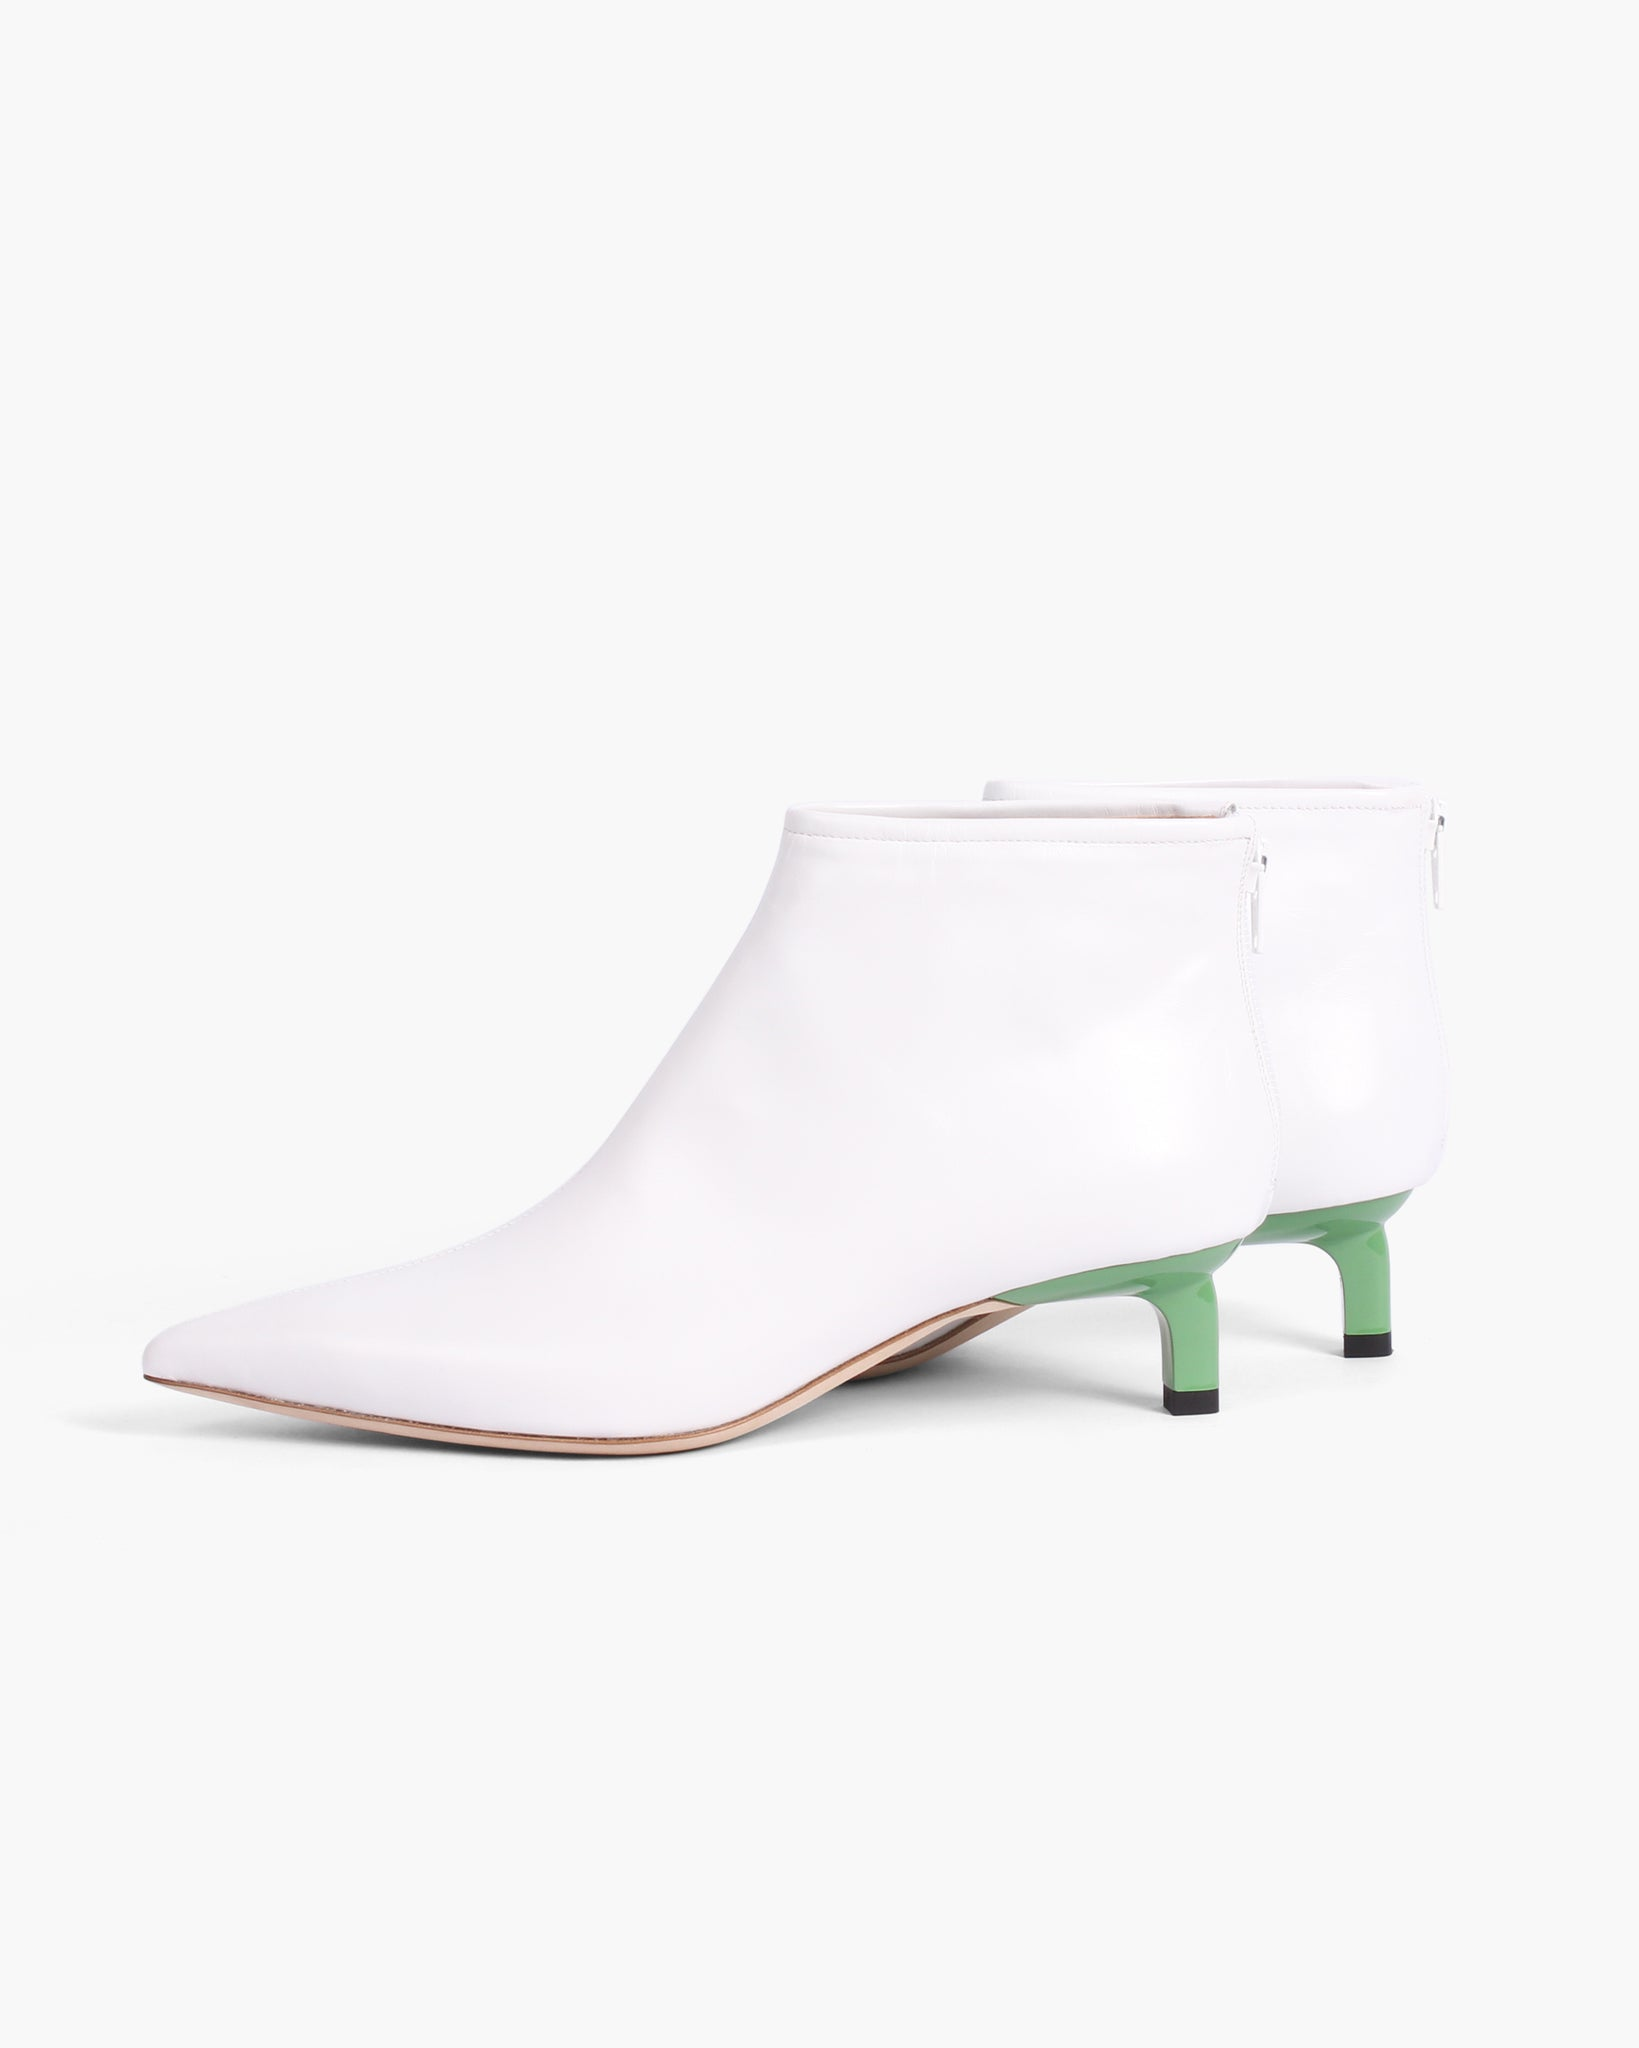 Marta Boot with Green Heel Leather White